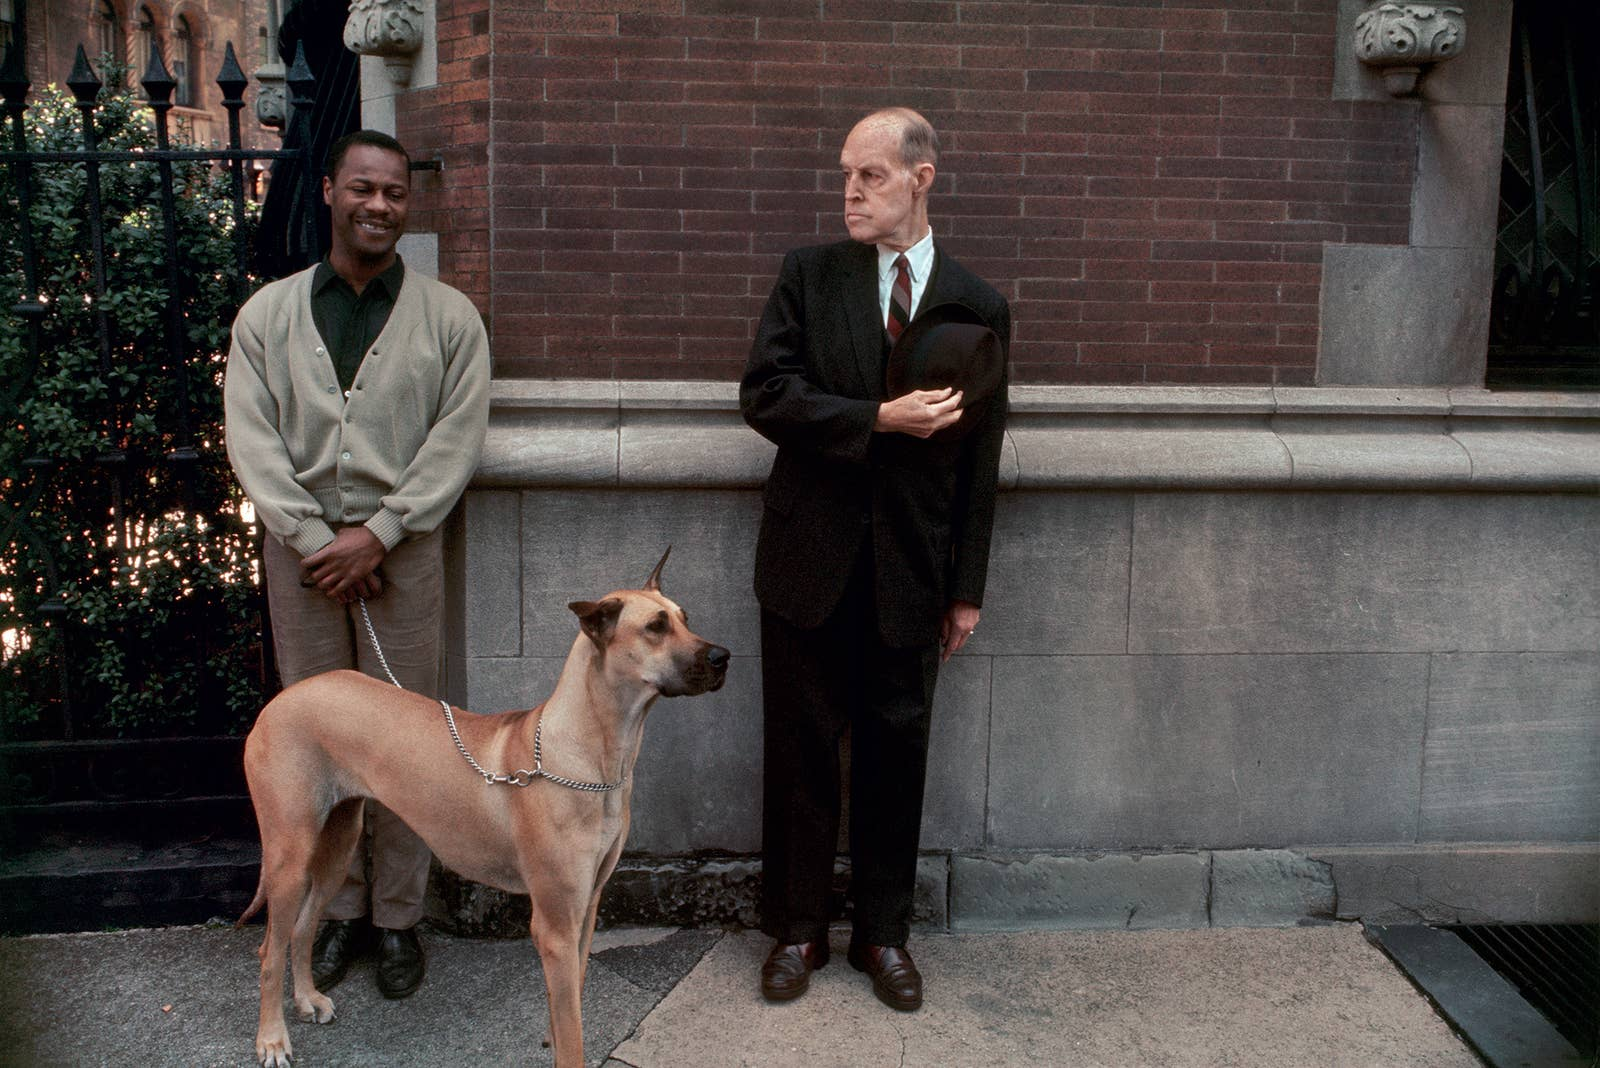 A man looks on at a second man holding a dog on a chain leash